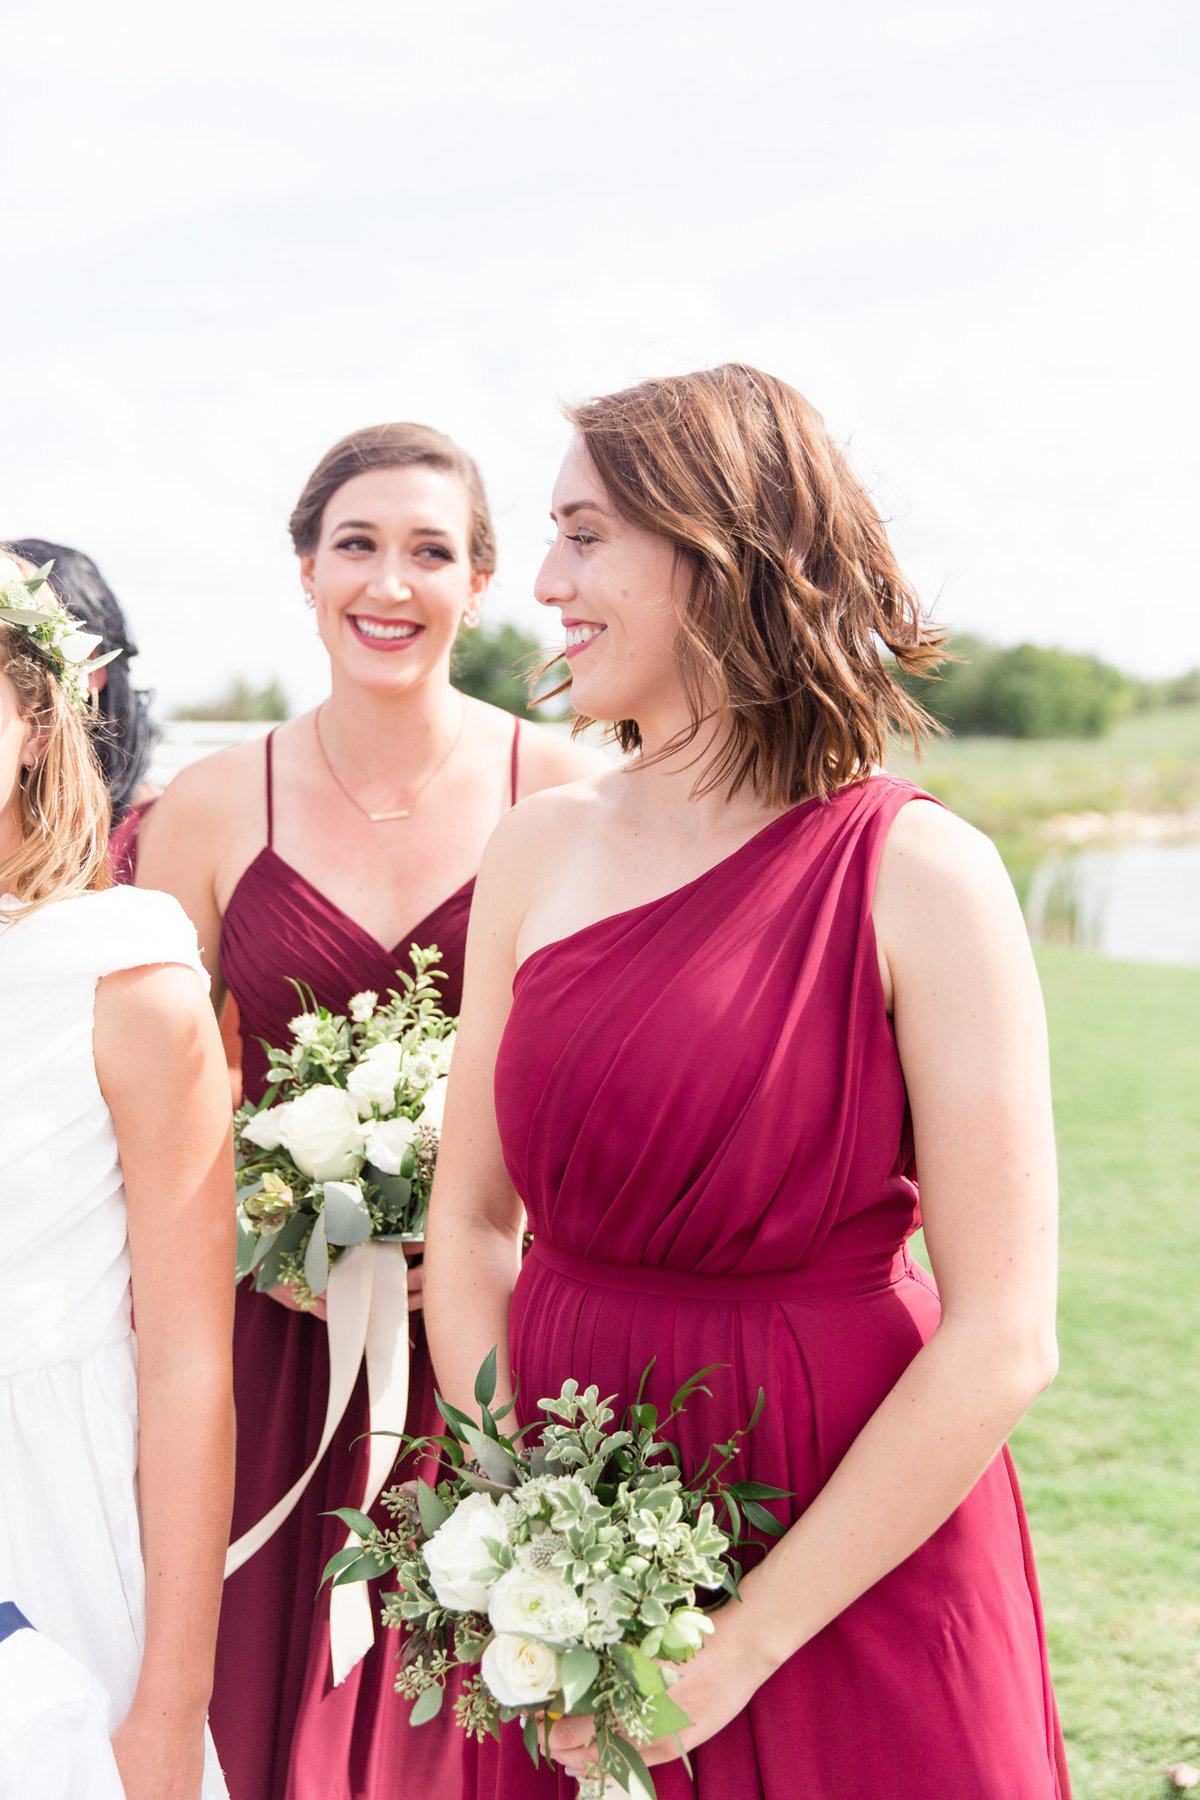 Nick & Sam Wedding | The Nest at Ruth Farms | Sami Kathryn Photography | Dallas Wedding Photographer-119